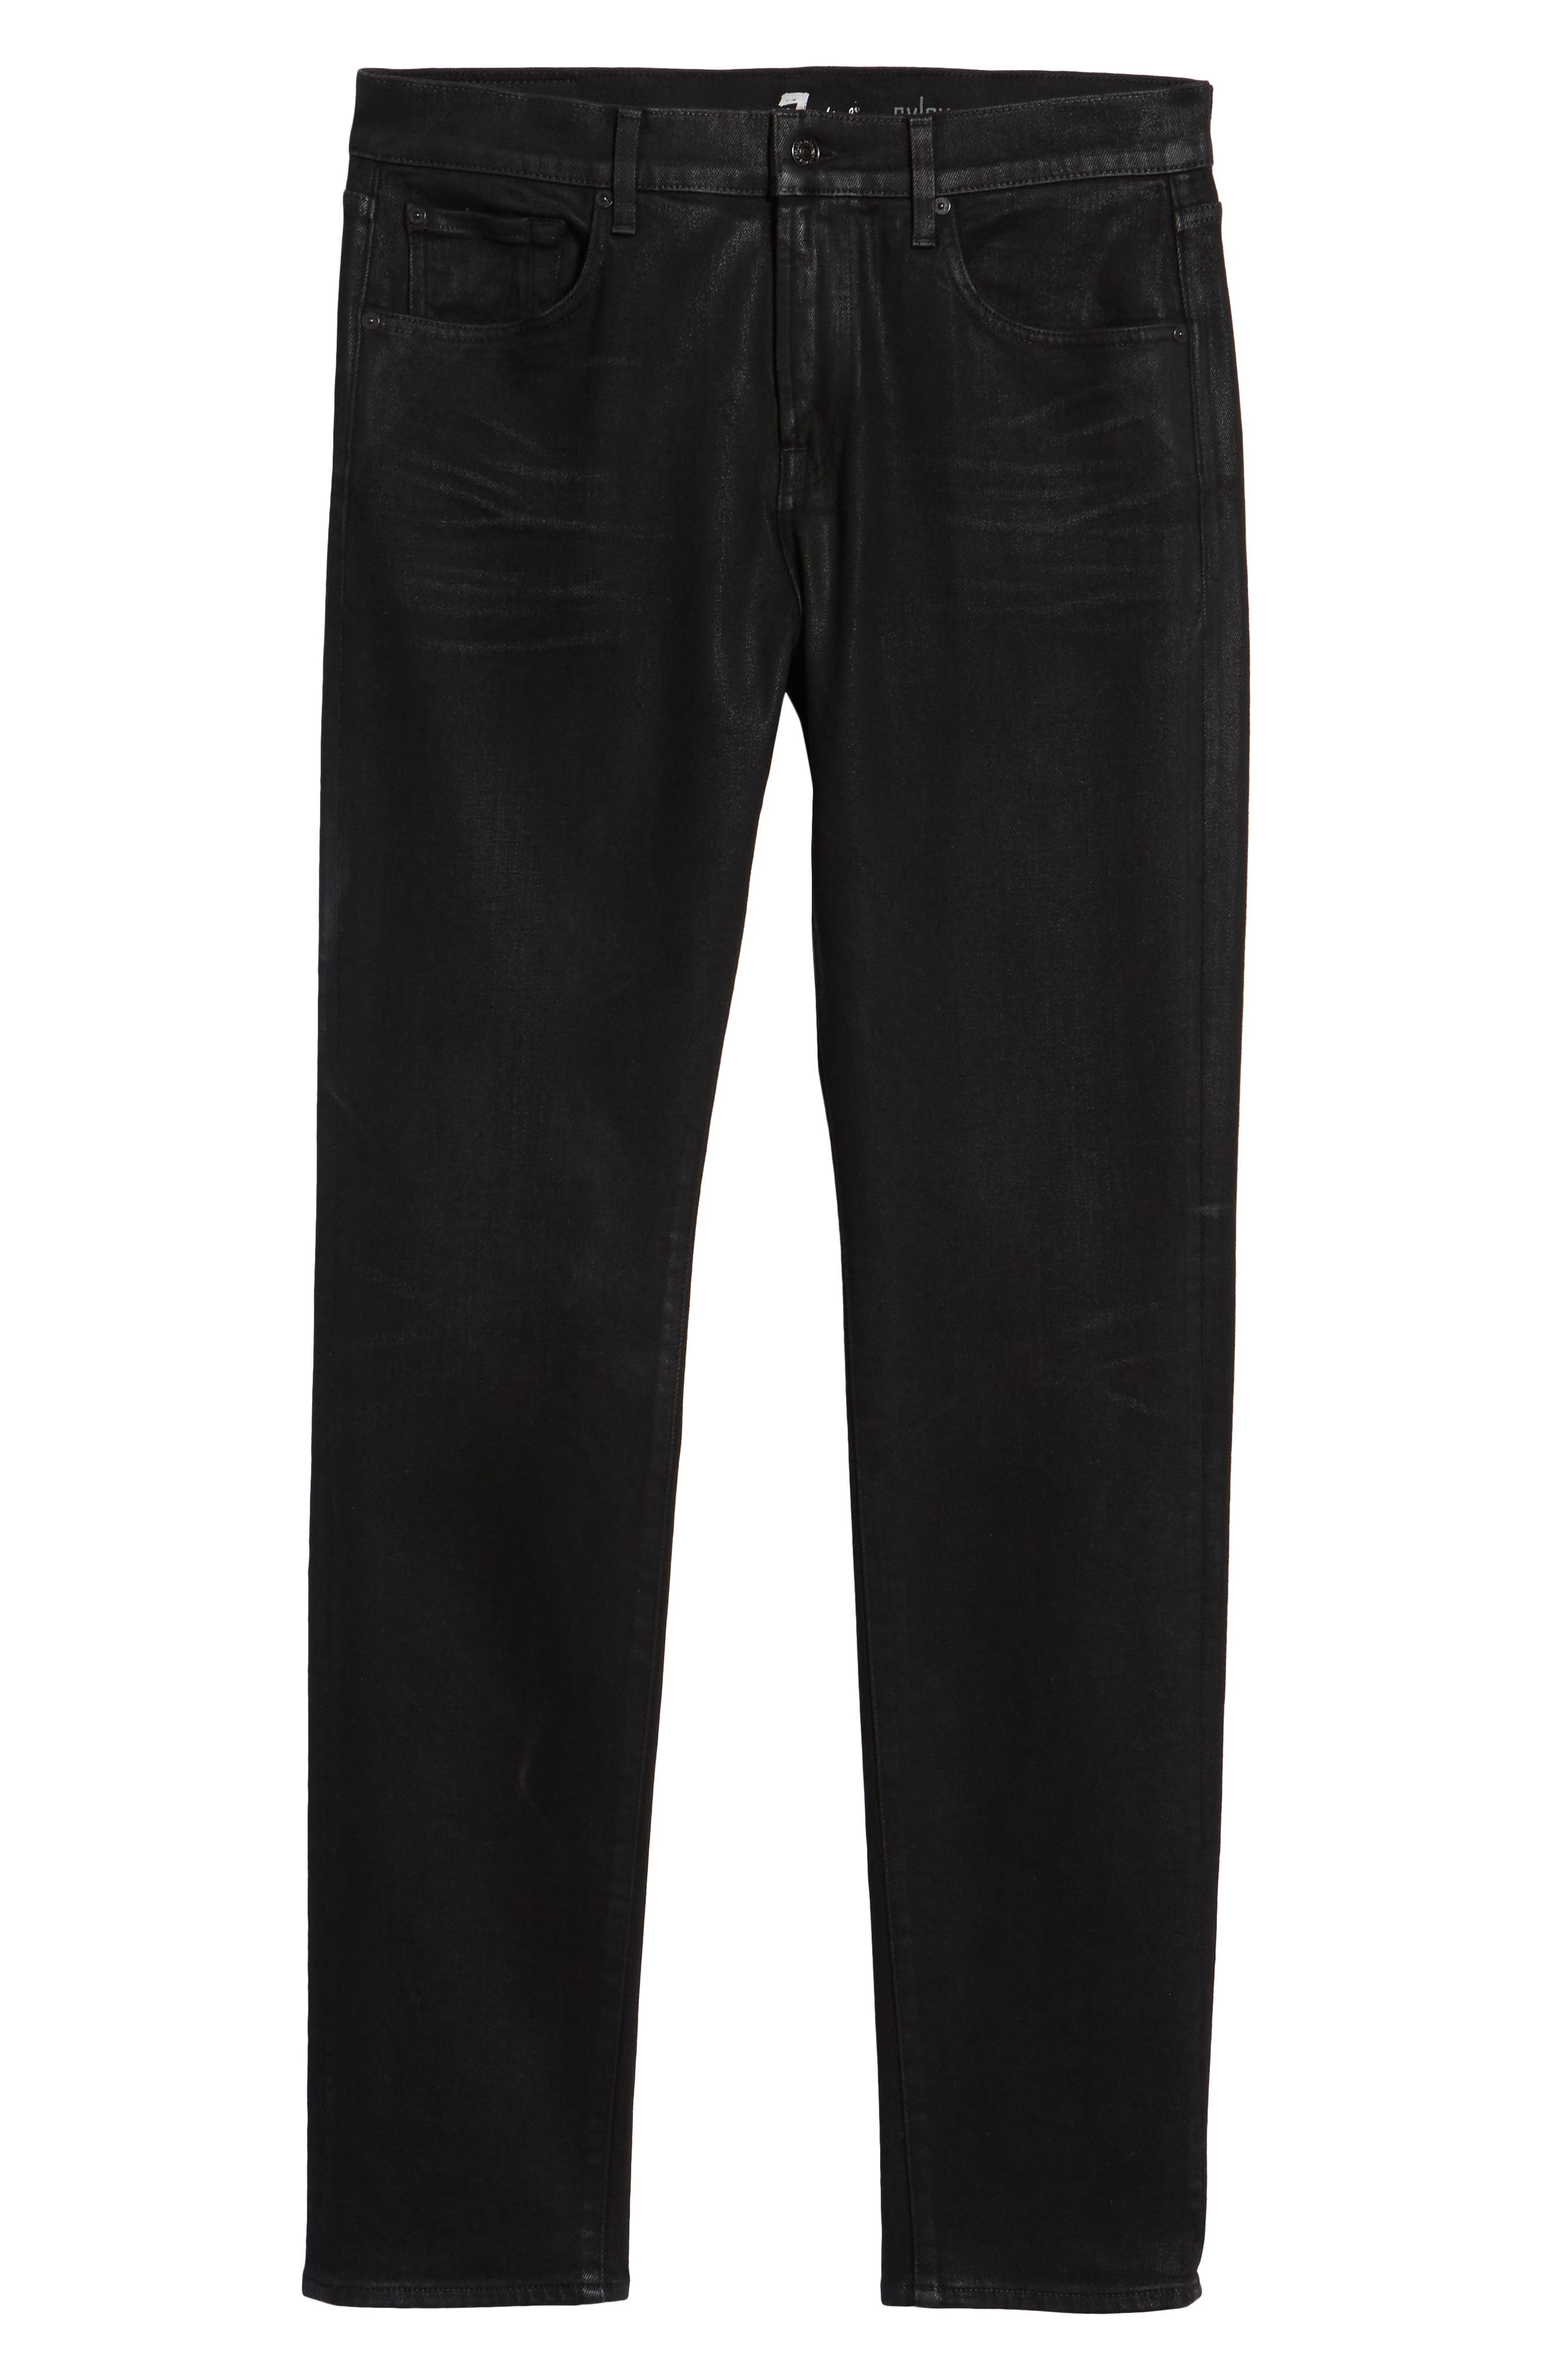 7 FOR ALL MANKIND<SUP>®</SUP>, Ryley Skinny Fit Jeans, Alternate thumbnail 7, color, 004